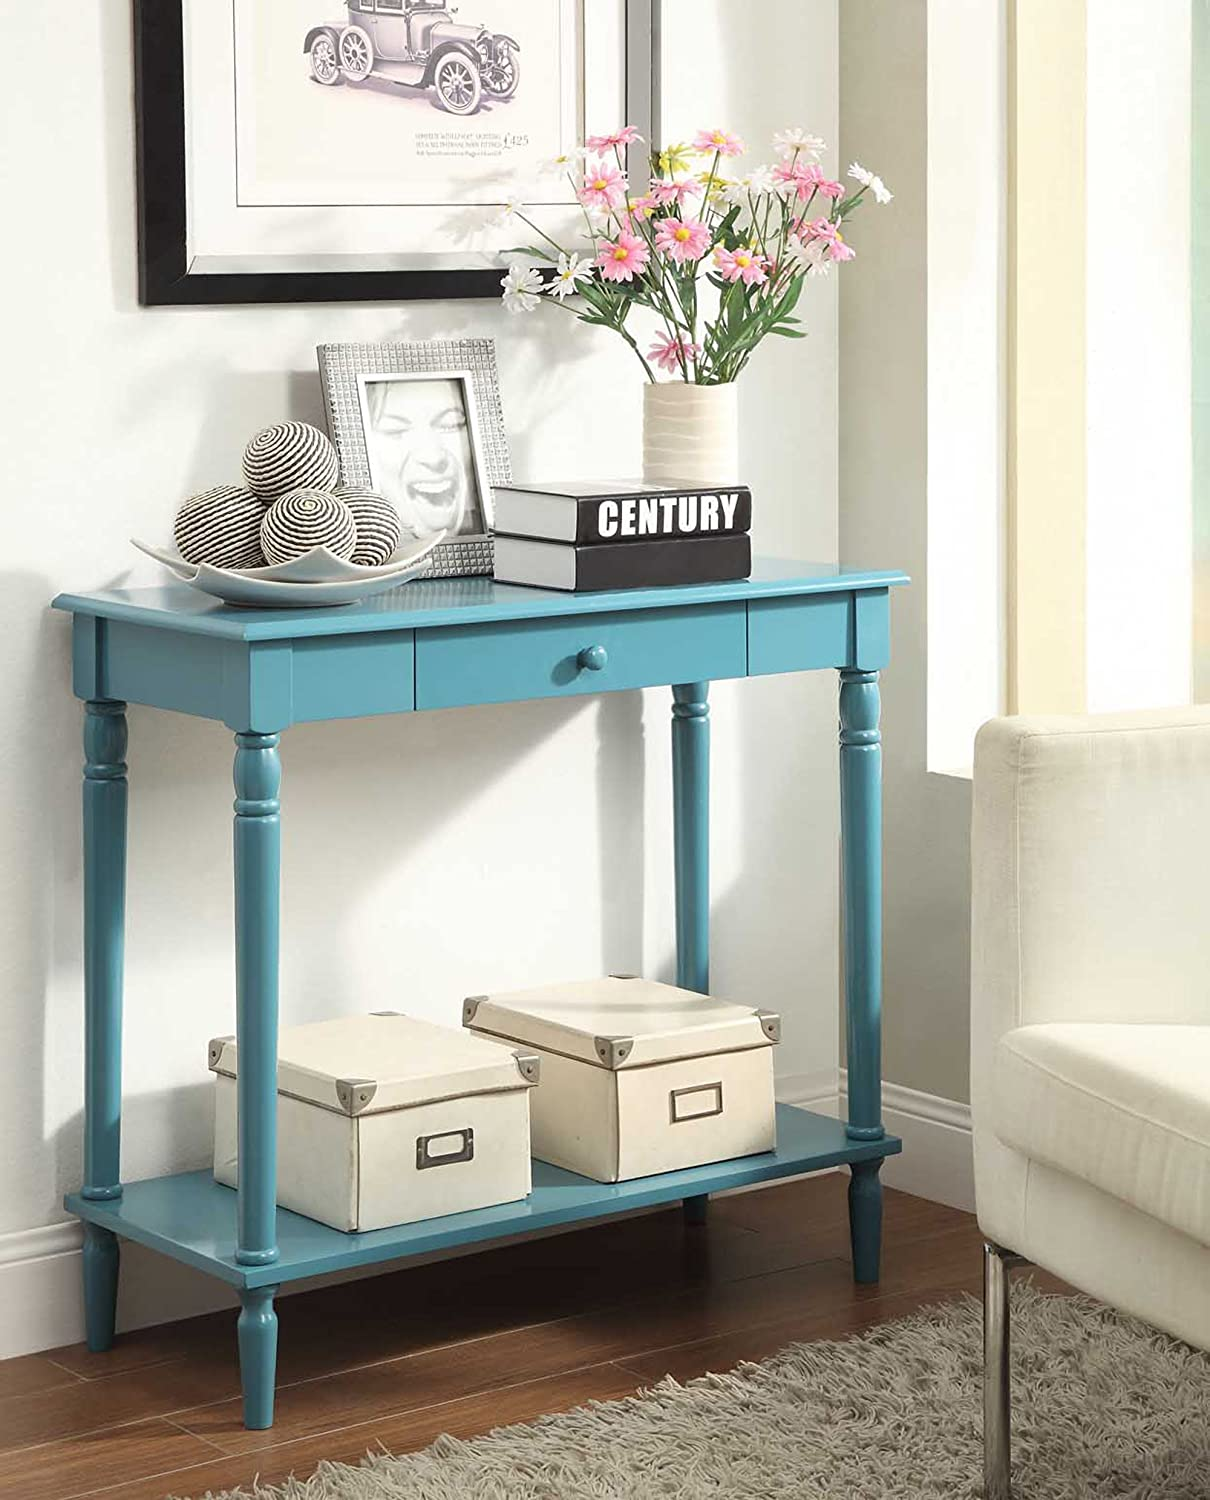 Attractive Amazon.com: Convenience Concepts French Country Hall Table, Blue: Kitchen U0026  Dining